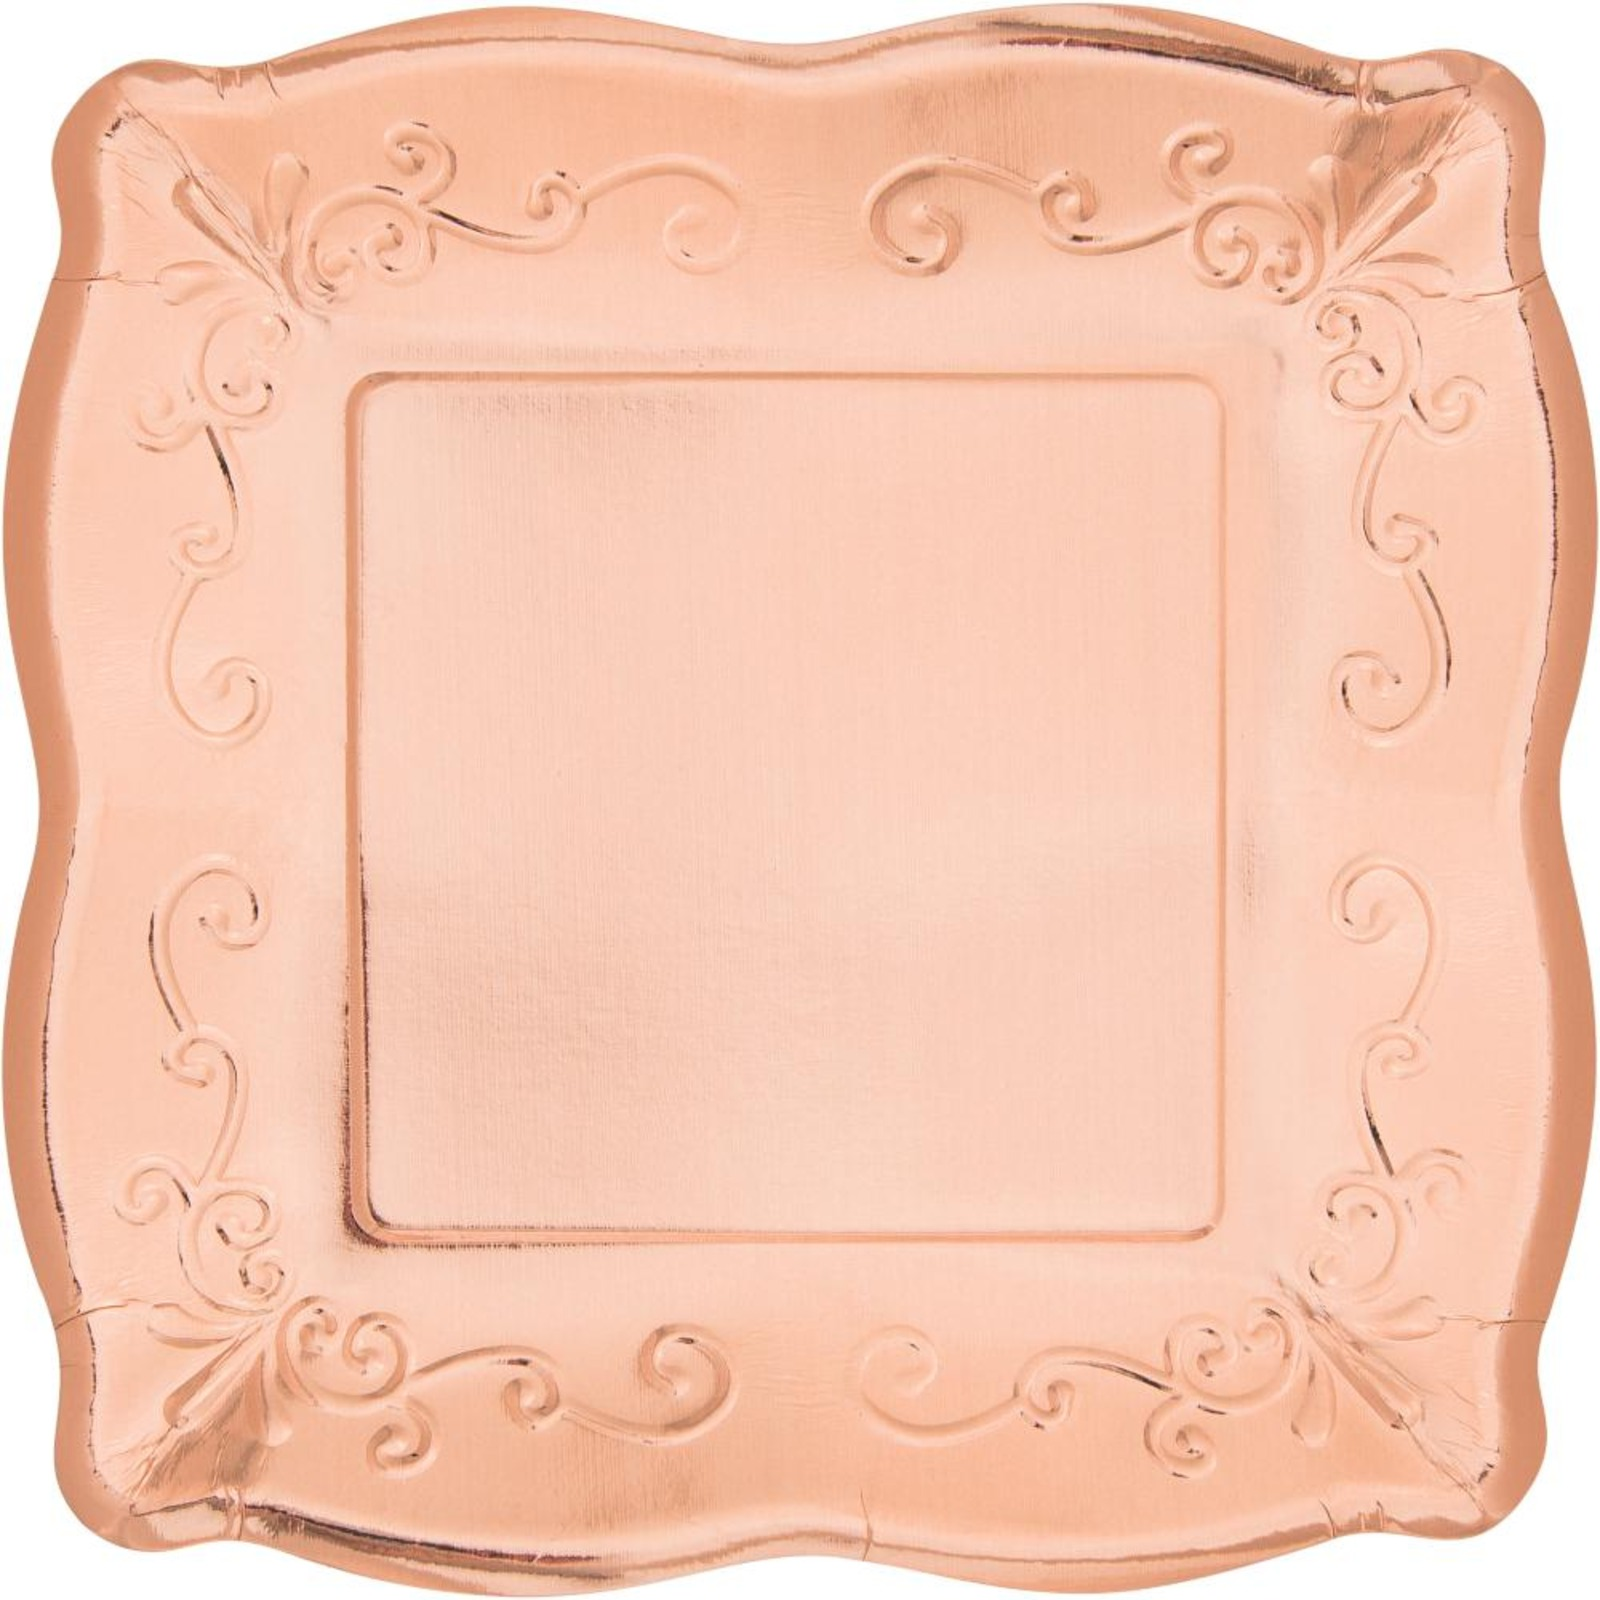 Creative Converting Rose Gold 7 Inch Embossed Square Plates